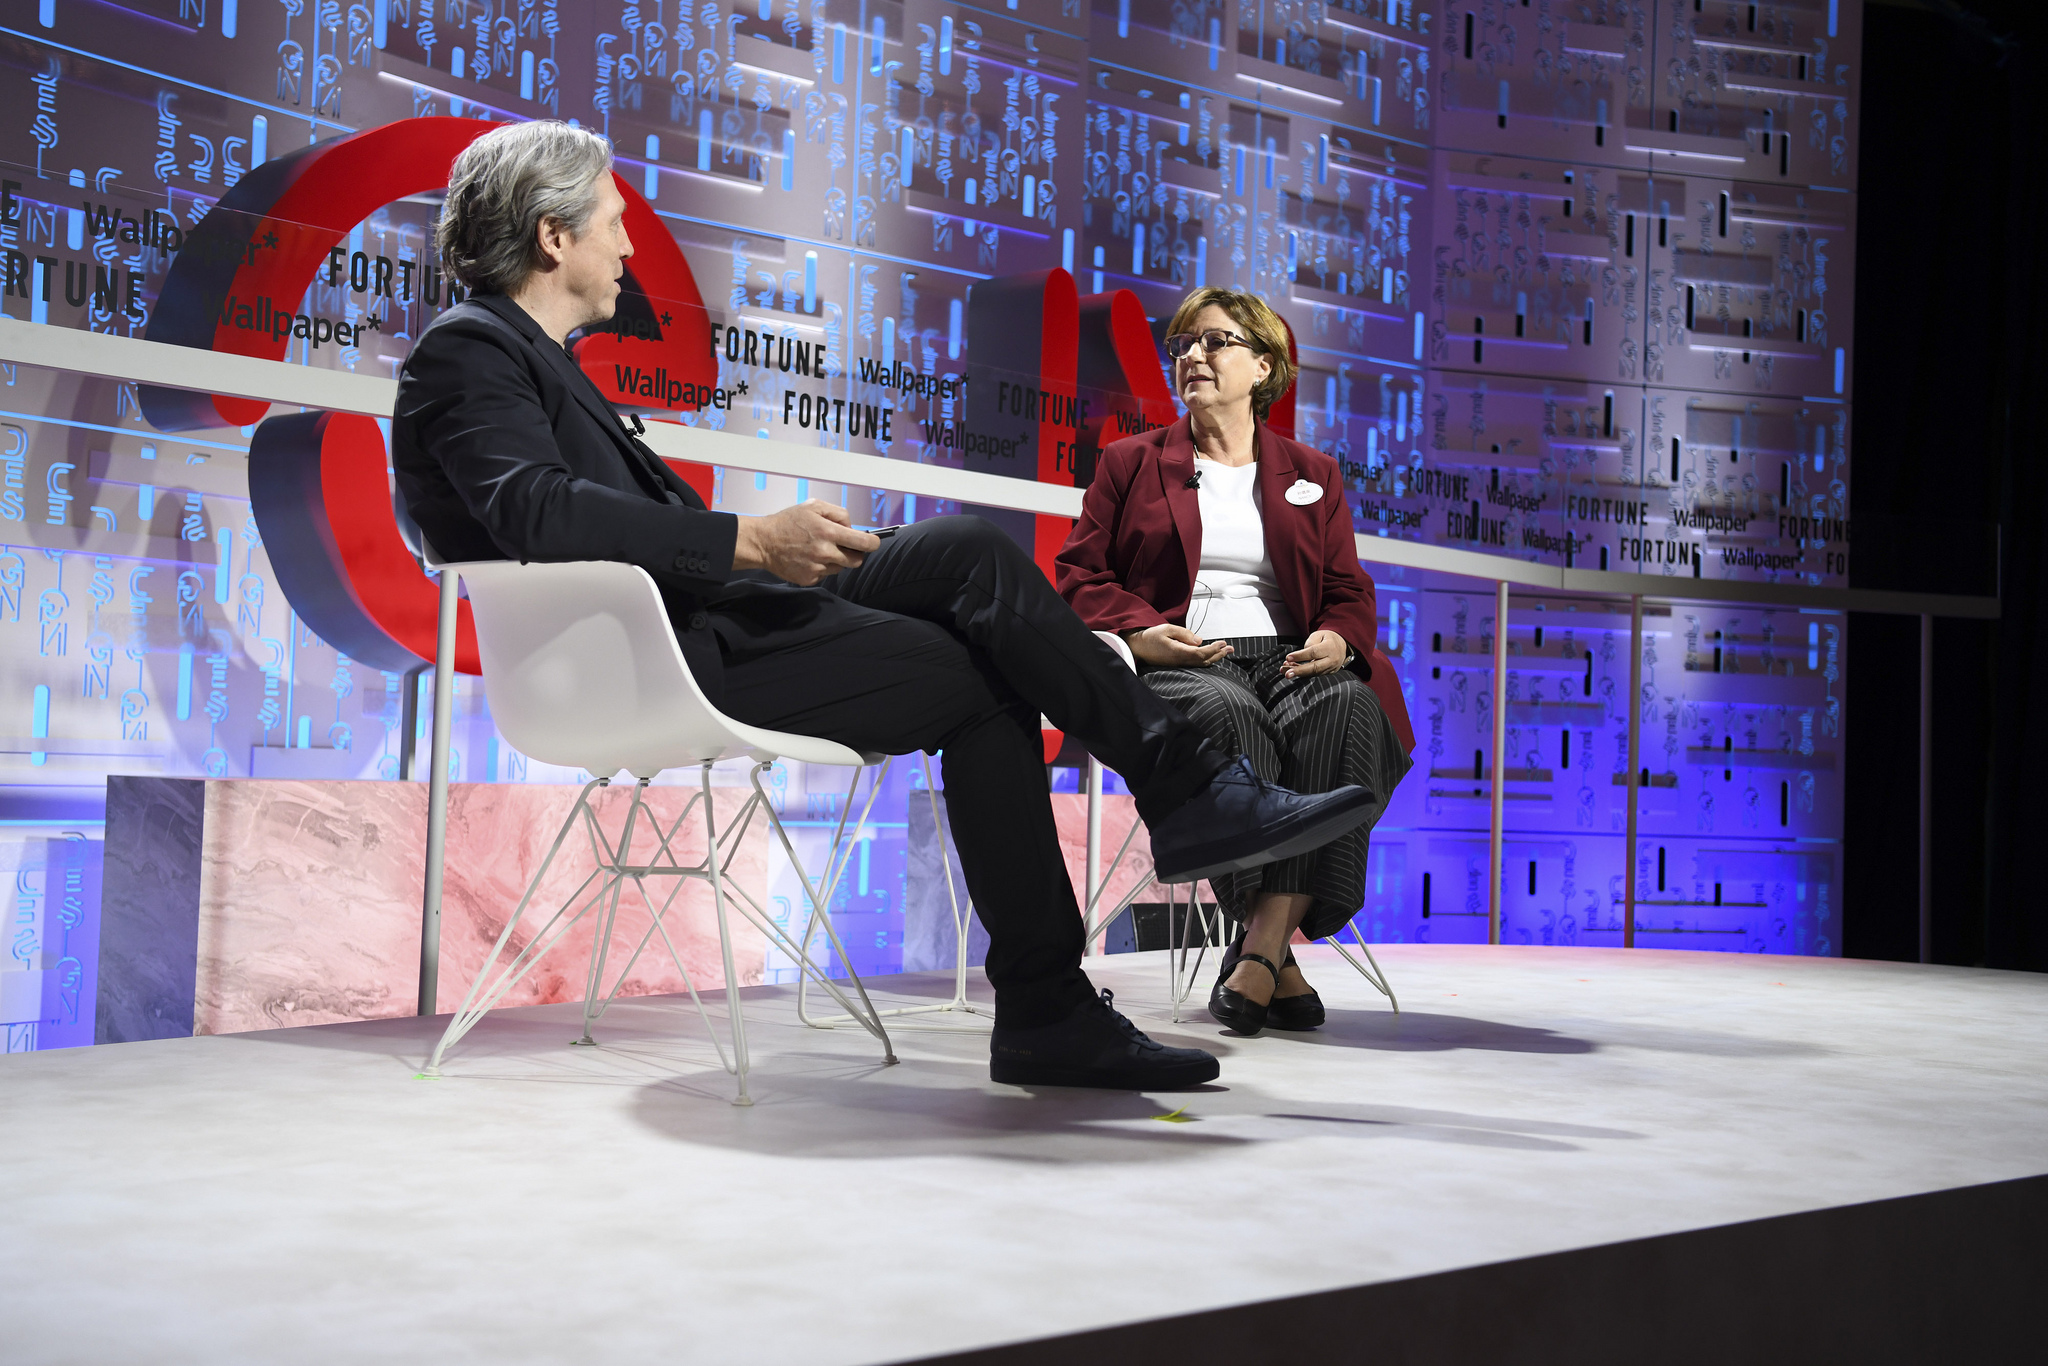 Nancy Seruto (right), executive producer for Walt Disney Imagineering, with Fortune's Clay Chandler at the 2019 Fortune Brainstorm Design conference in Singapore.